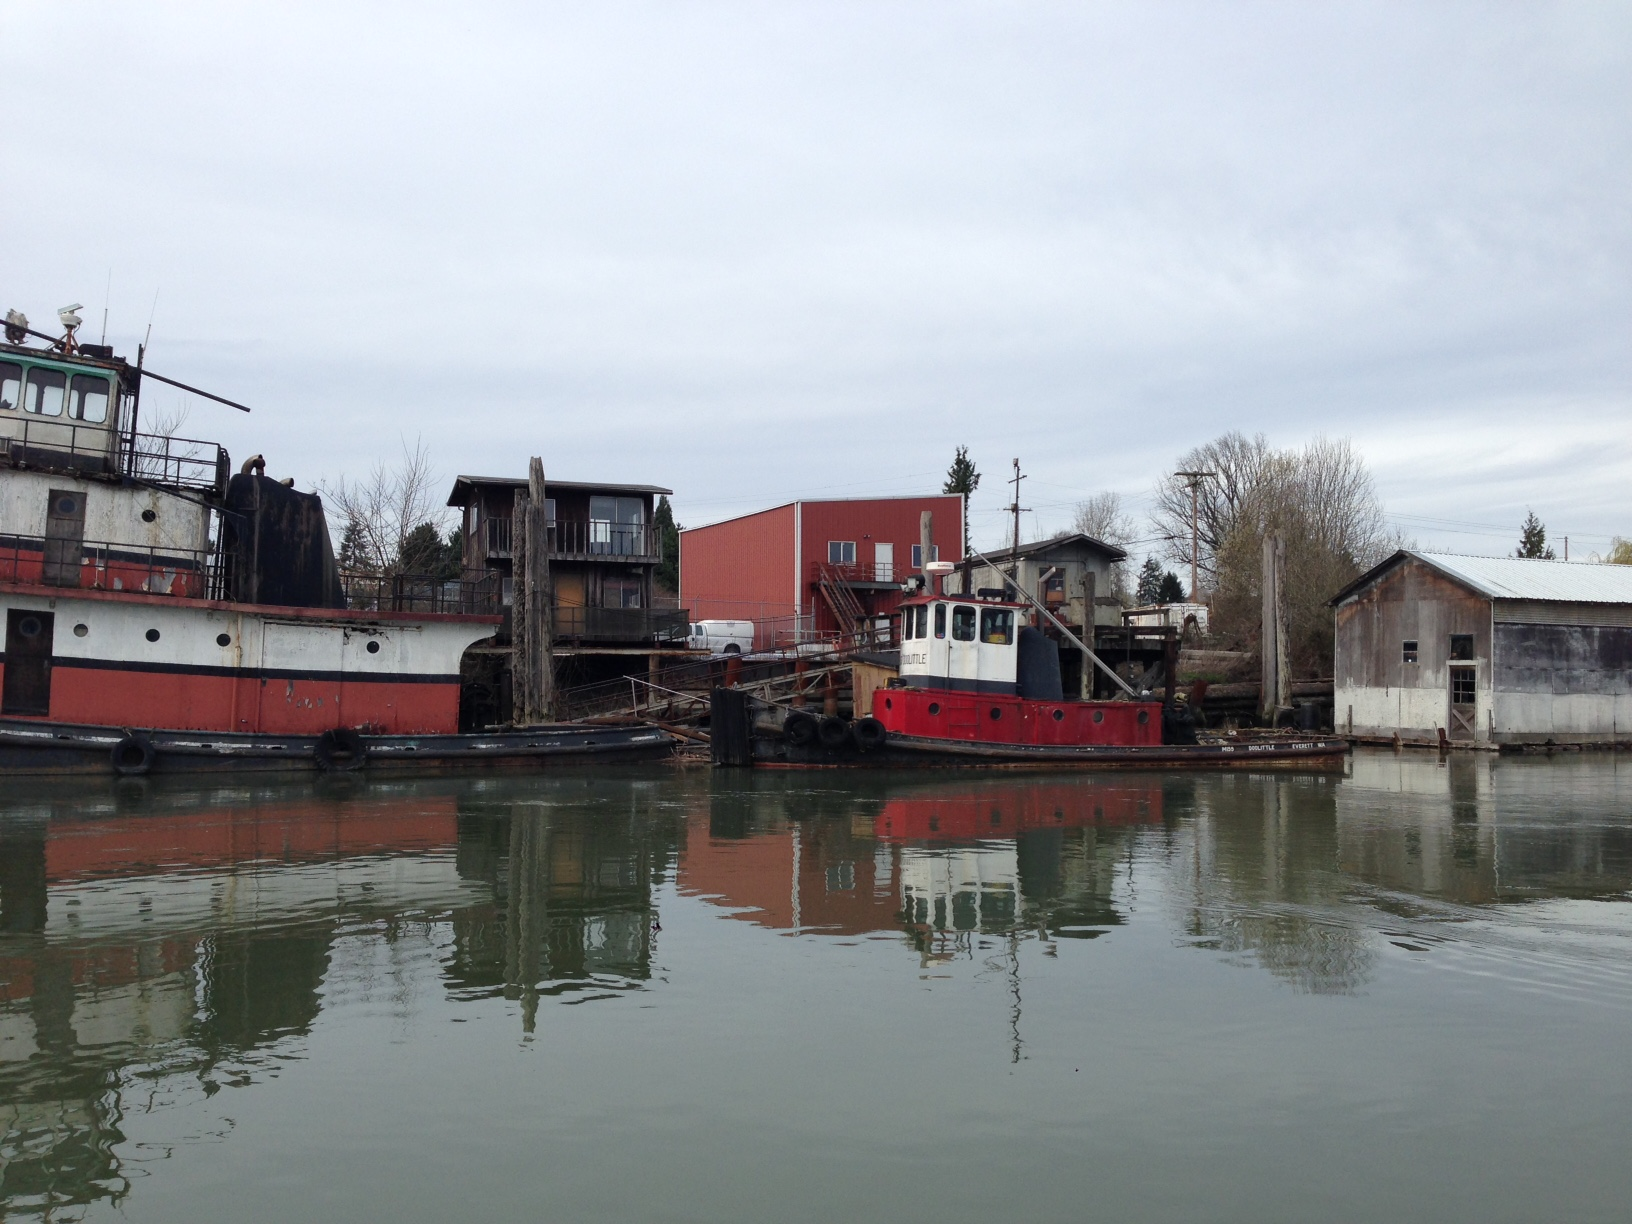 Working and retired vessels along the slough.